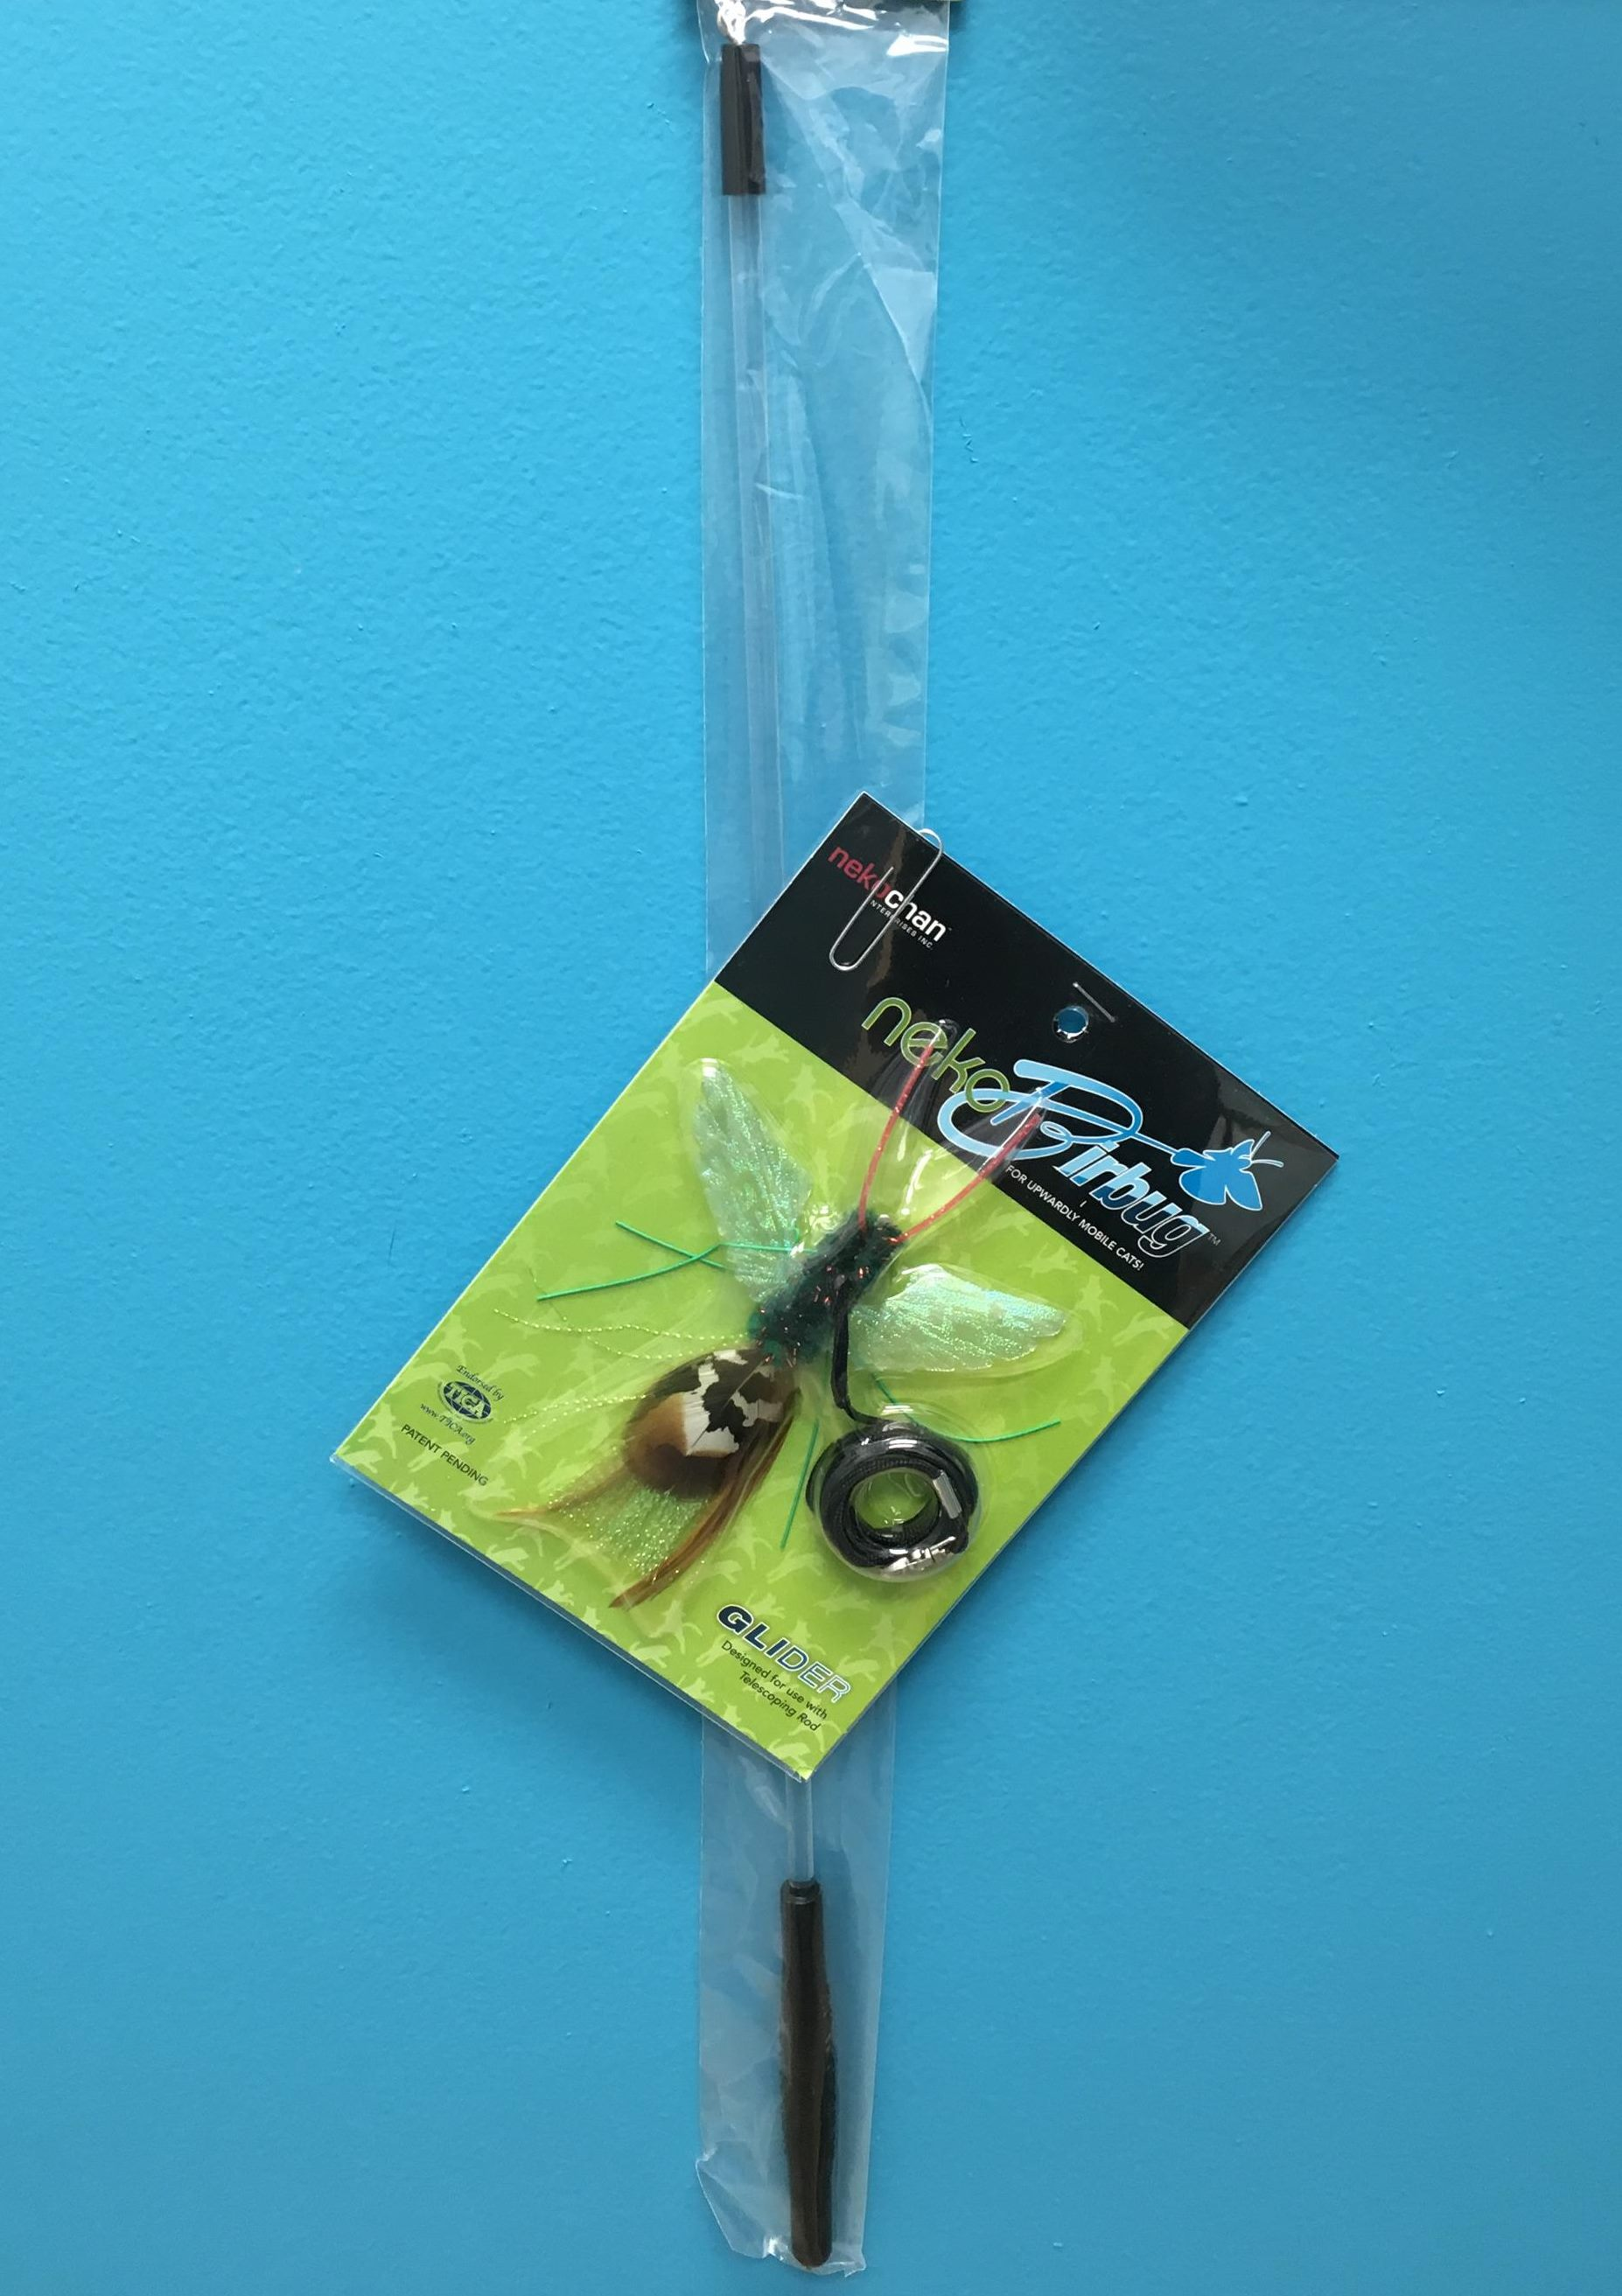 Neko fly Birbug attachment.